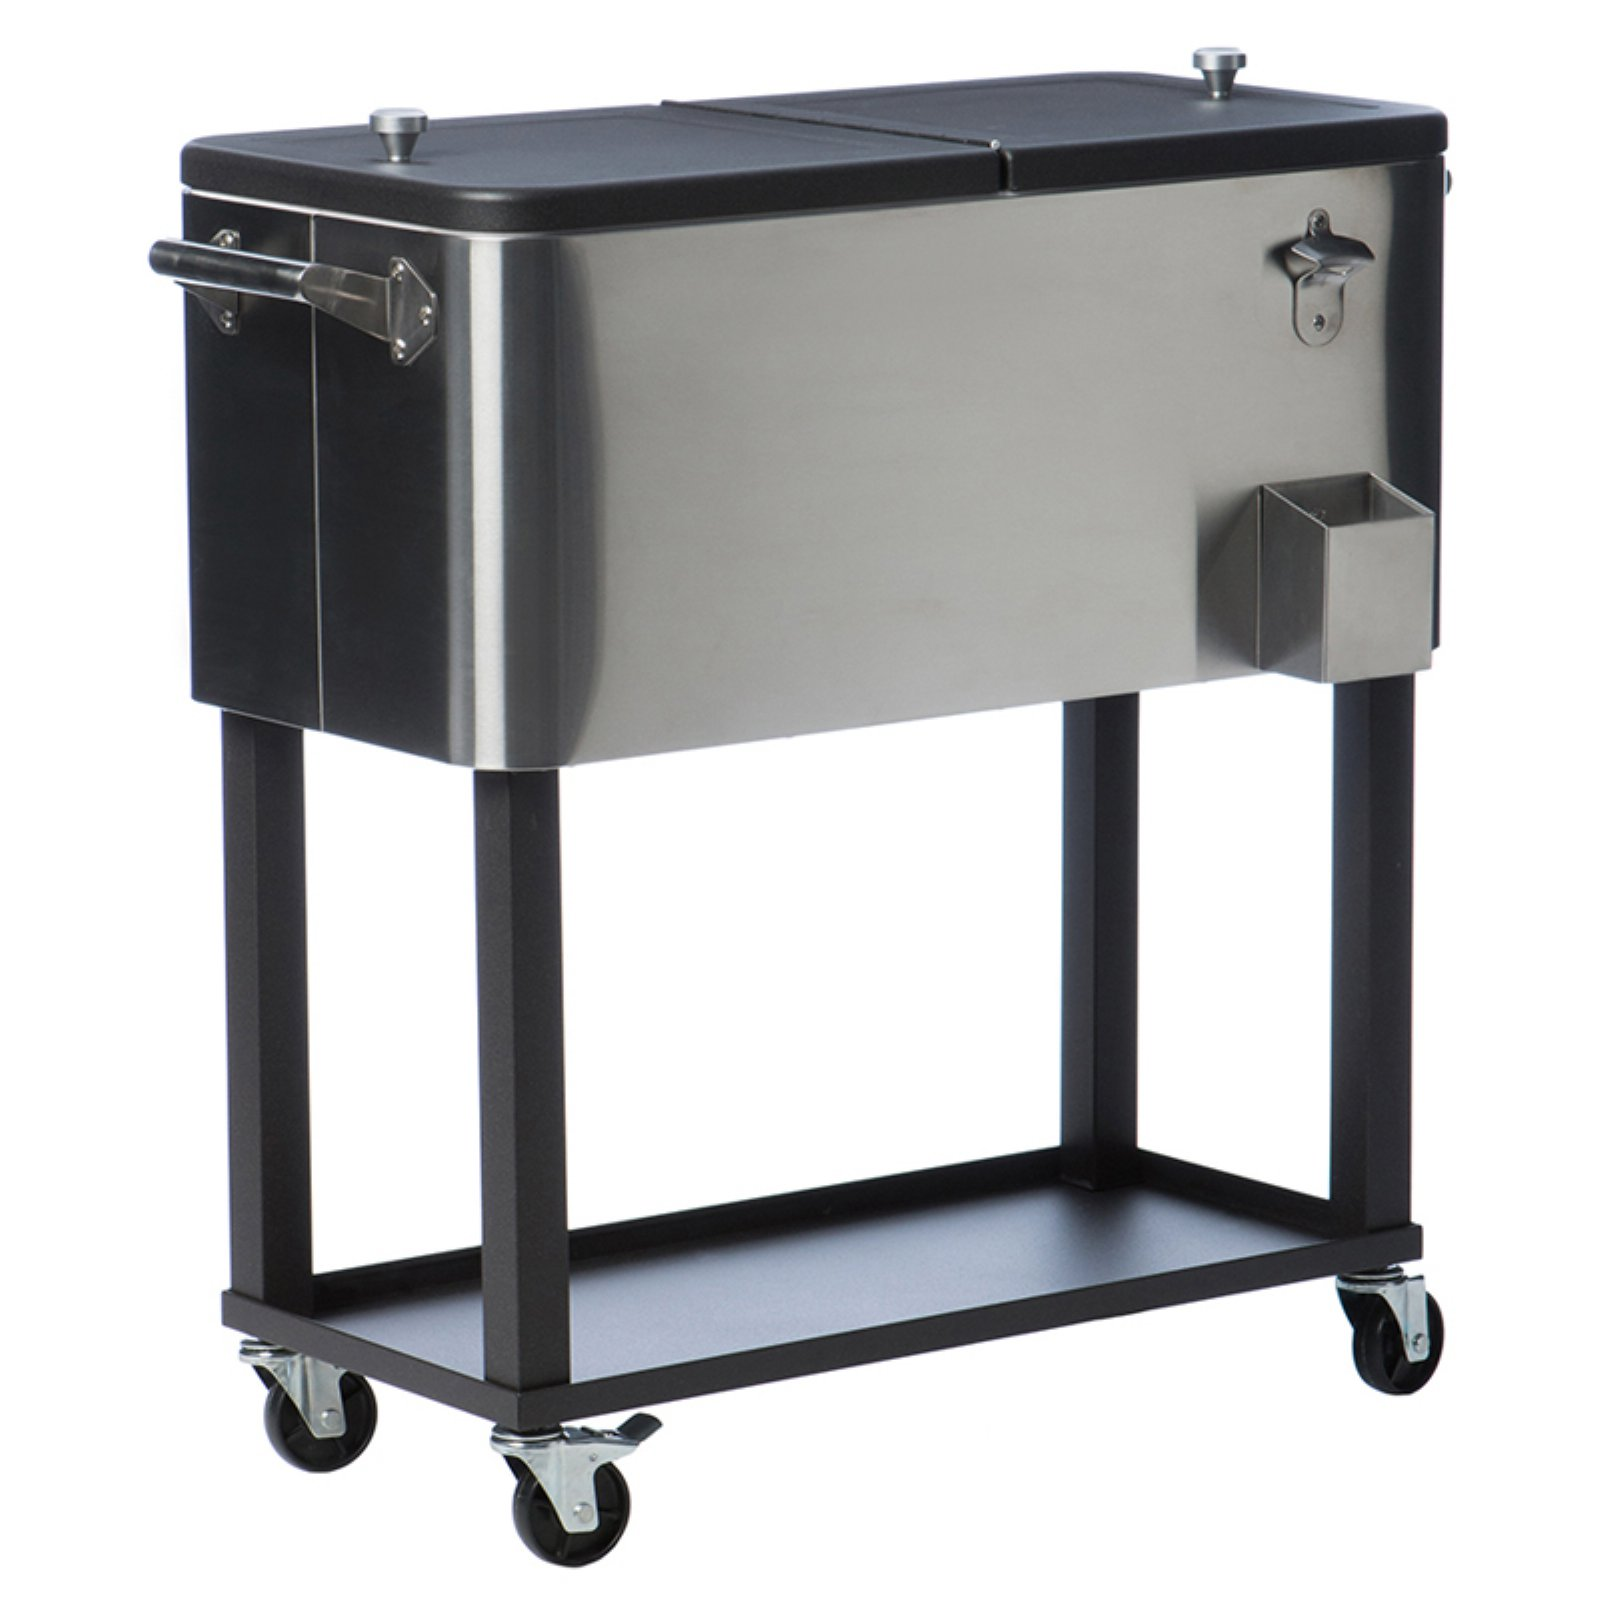 Trinity Stainless Steel Cooler with optional Cover